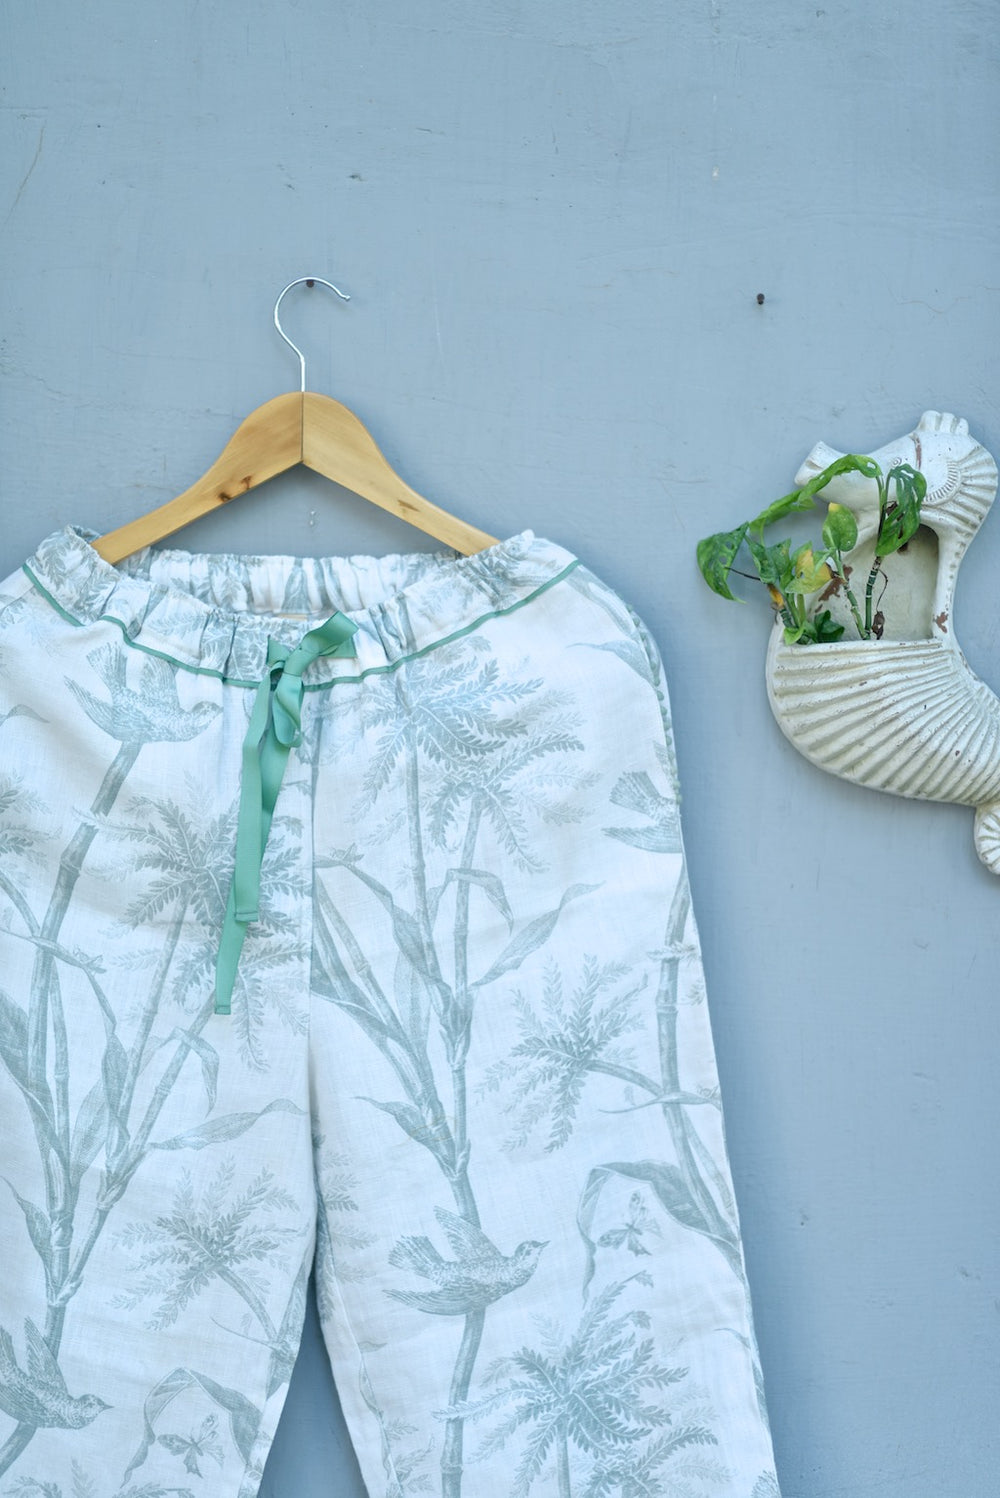 Zeme, Pure Linen Cream pajamas with Sage Color Bird Print with Pom Poms - kinchecom